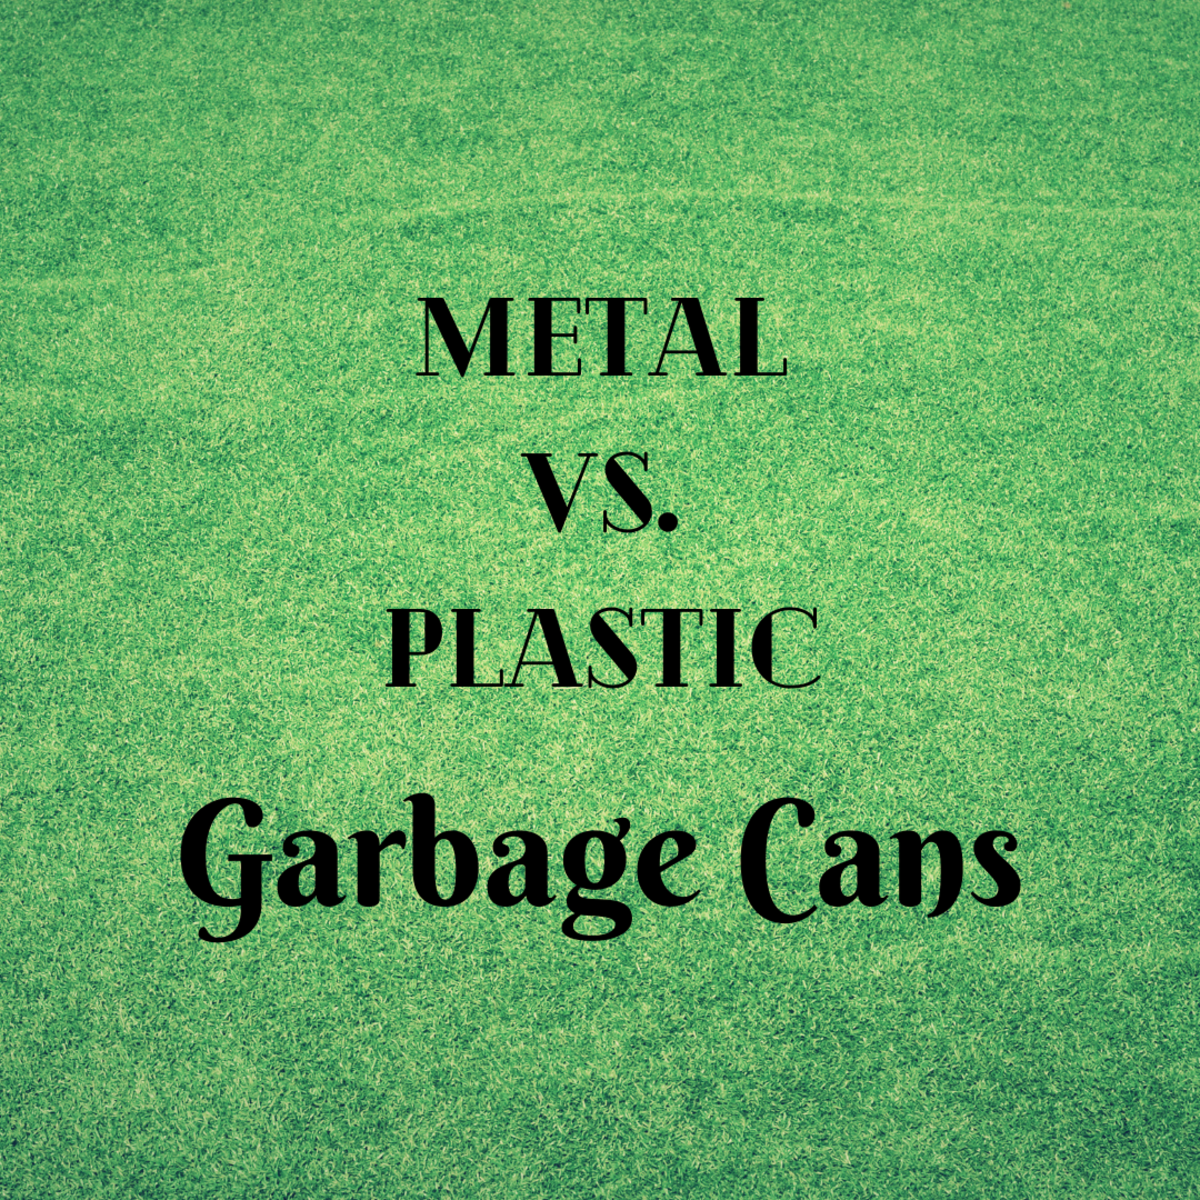 Which is better for an outdoor garbage can?